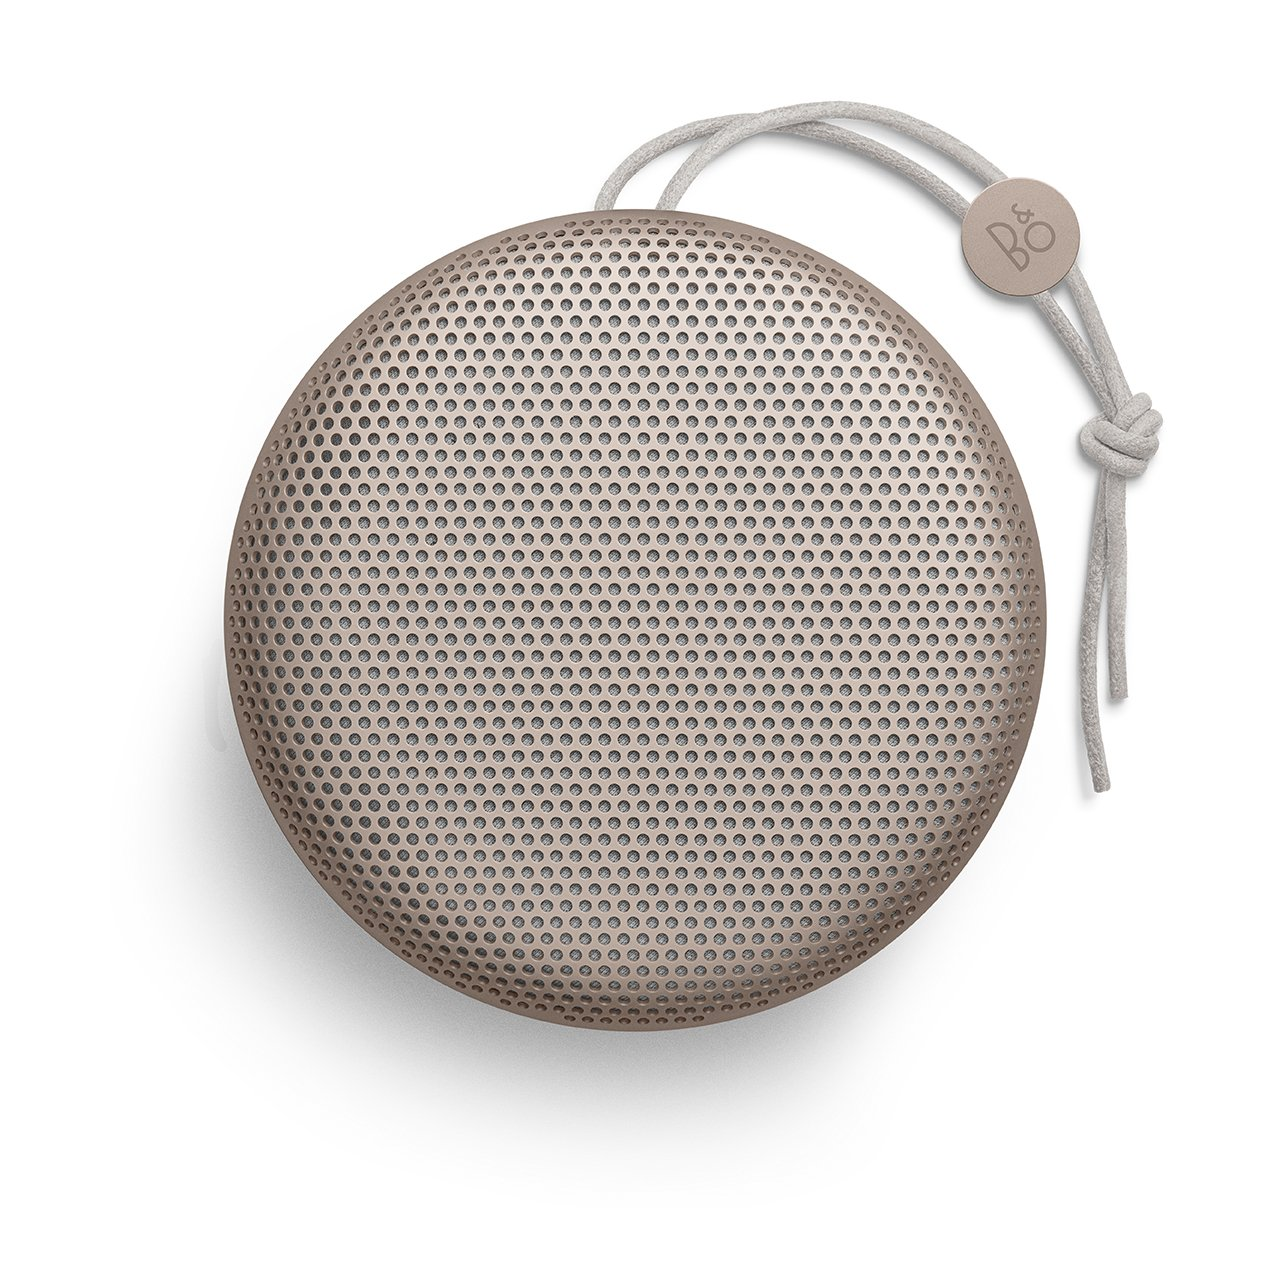 B&O PLAY by Bang & Olufsen Beoplay A1 Portable Bluetooth Speaker with Microphone (Sand Stone)